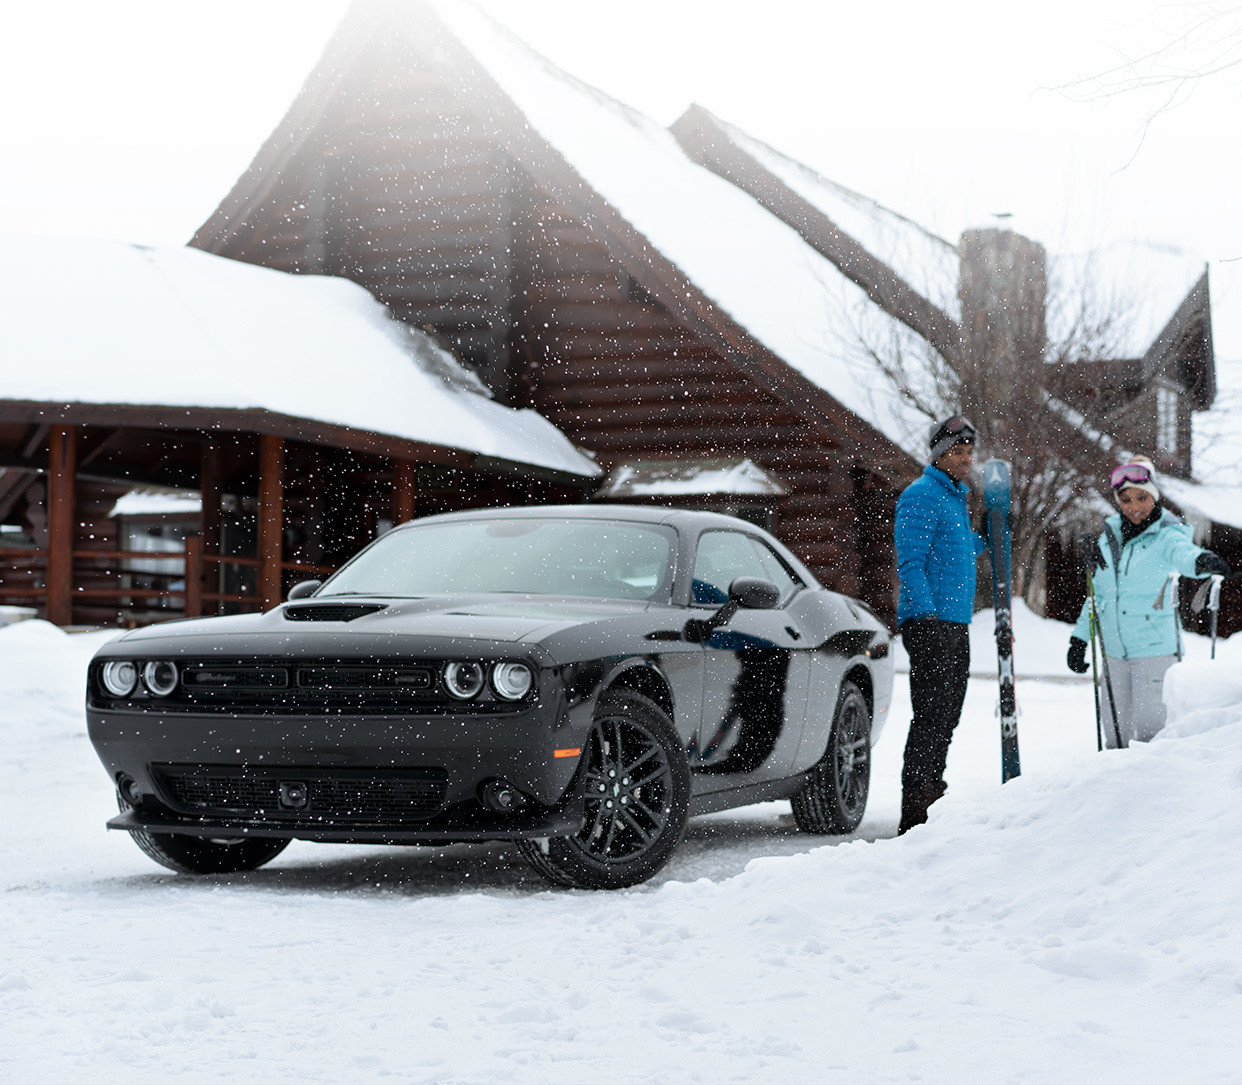 Front view of the black 2019 Dodge Challenger parked in the snow outside of a mountain cabin